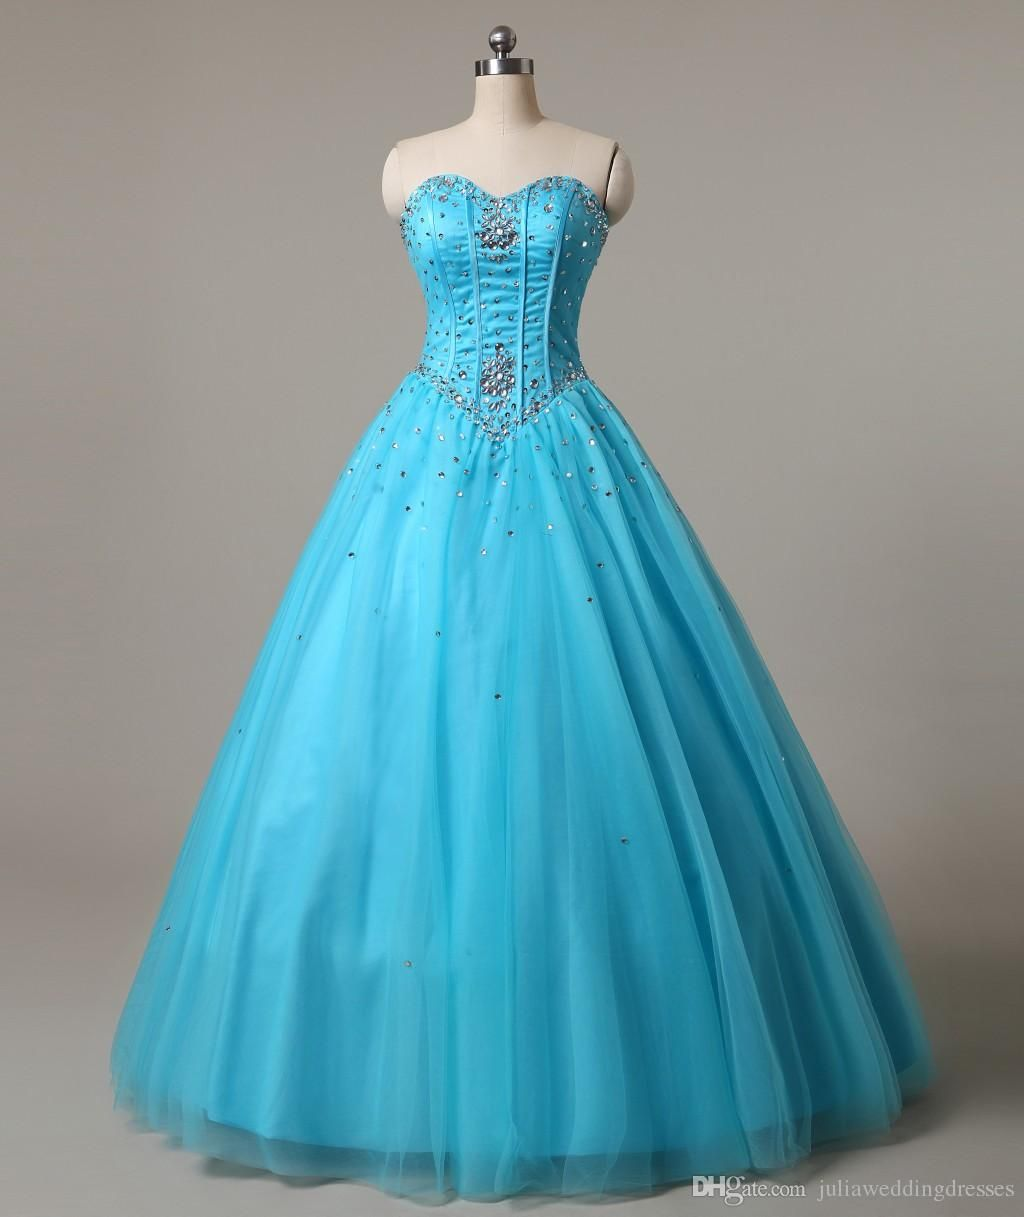 New Sweetheart Blue Quinceanera Dresses Ball Gown Tulle Beaded Crystal Sweet 16…